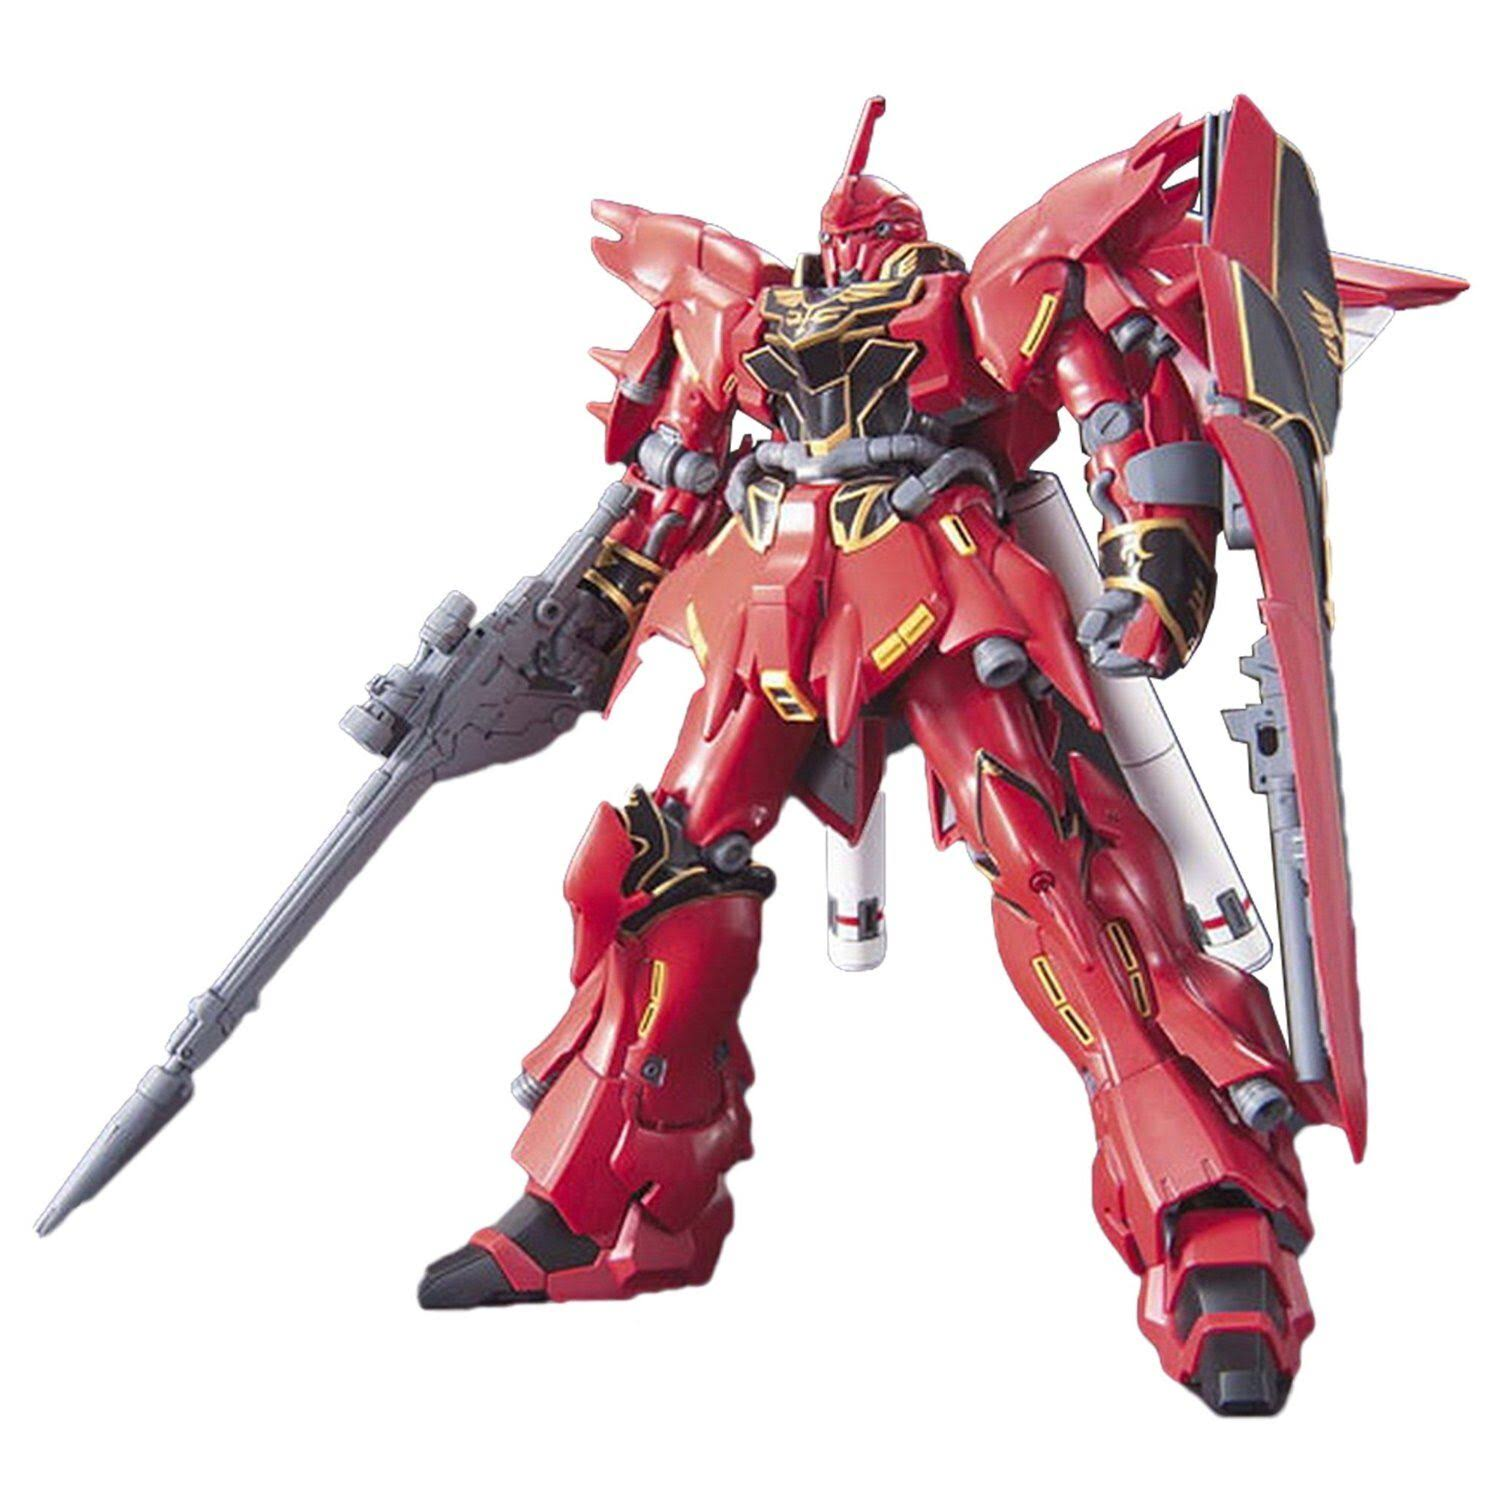 Bandai MSN-06S Sinanju Gundam Model Kit